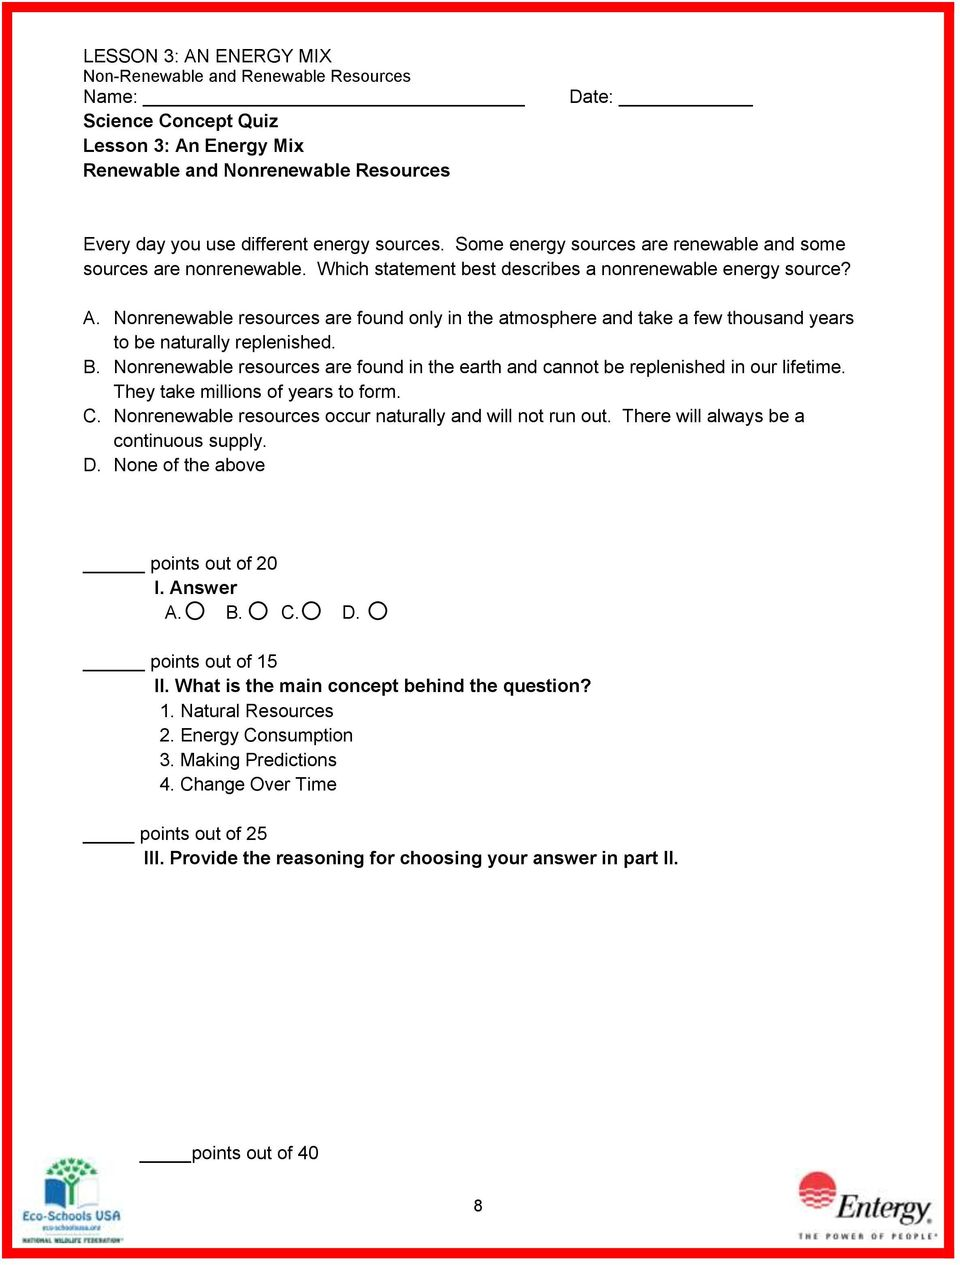 Worksheets Renewable And Nonrenewable Resources Worksheets renewable and nonrenewable energy worksheets etfs resources are found only in the atmosphere take a few thousand years to be